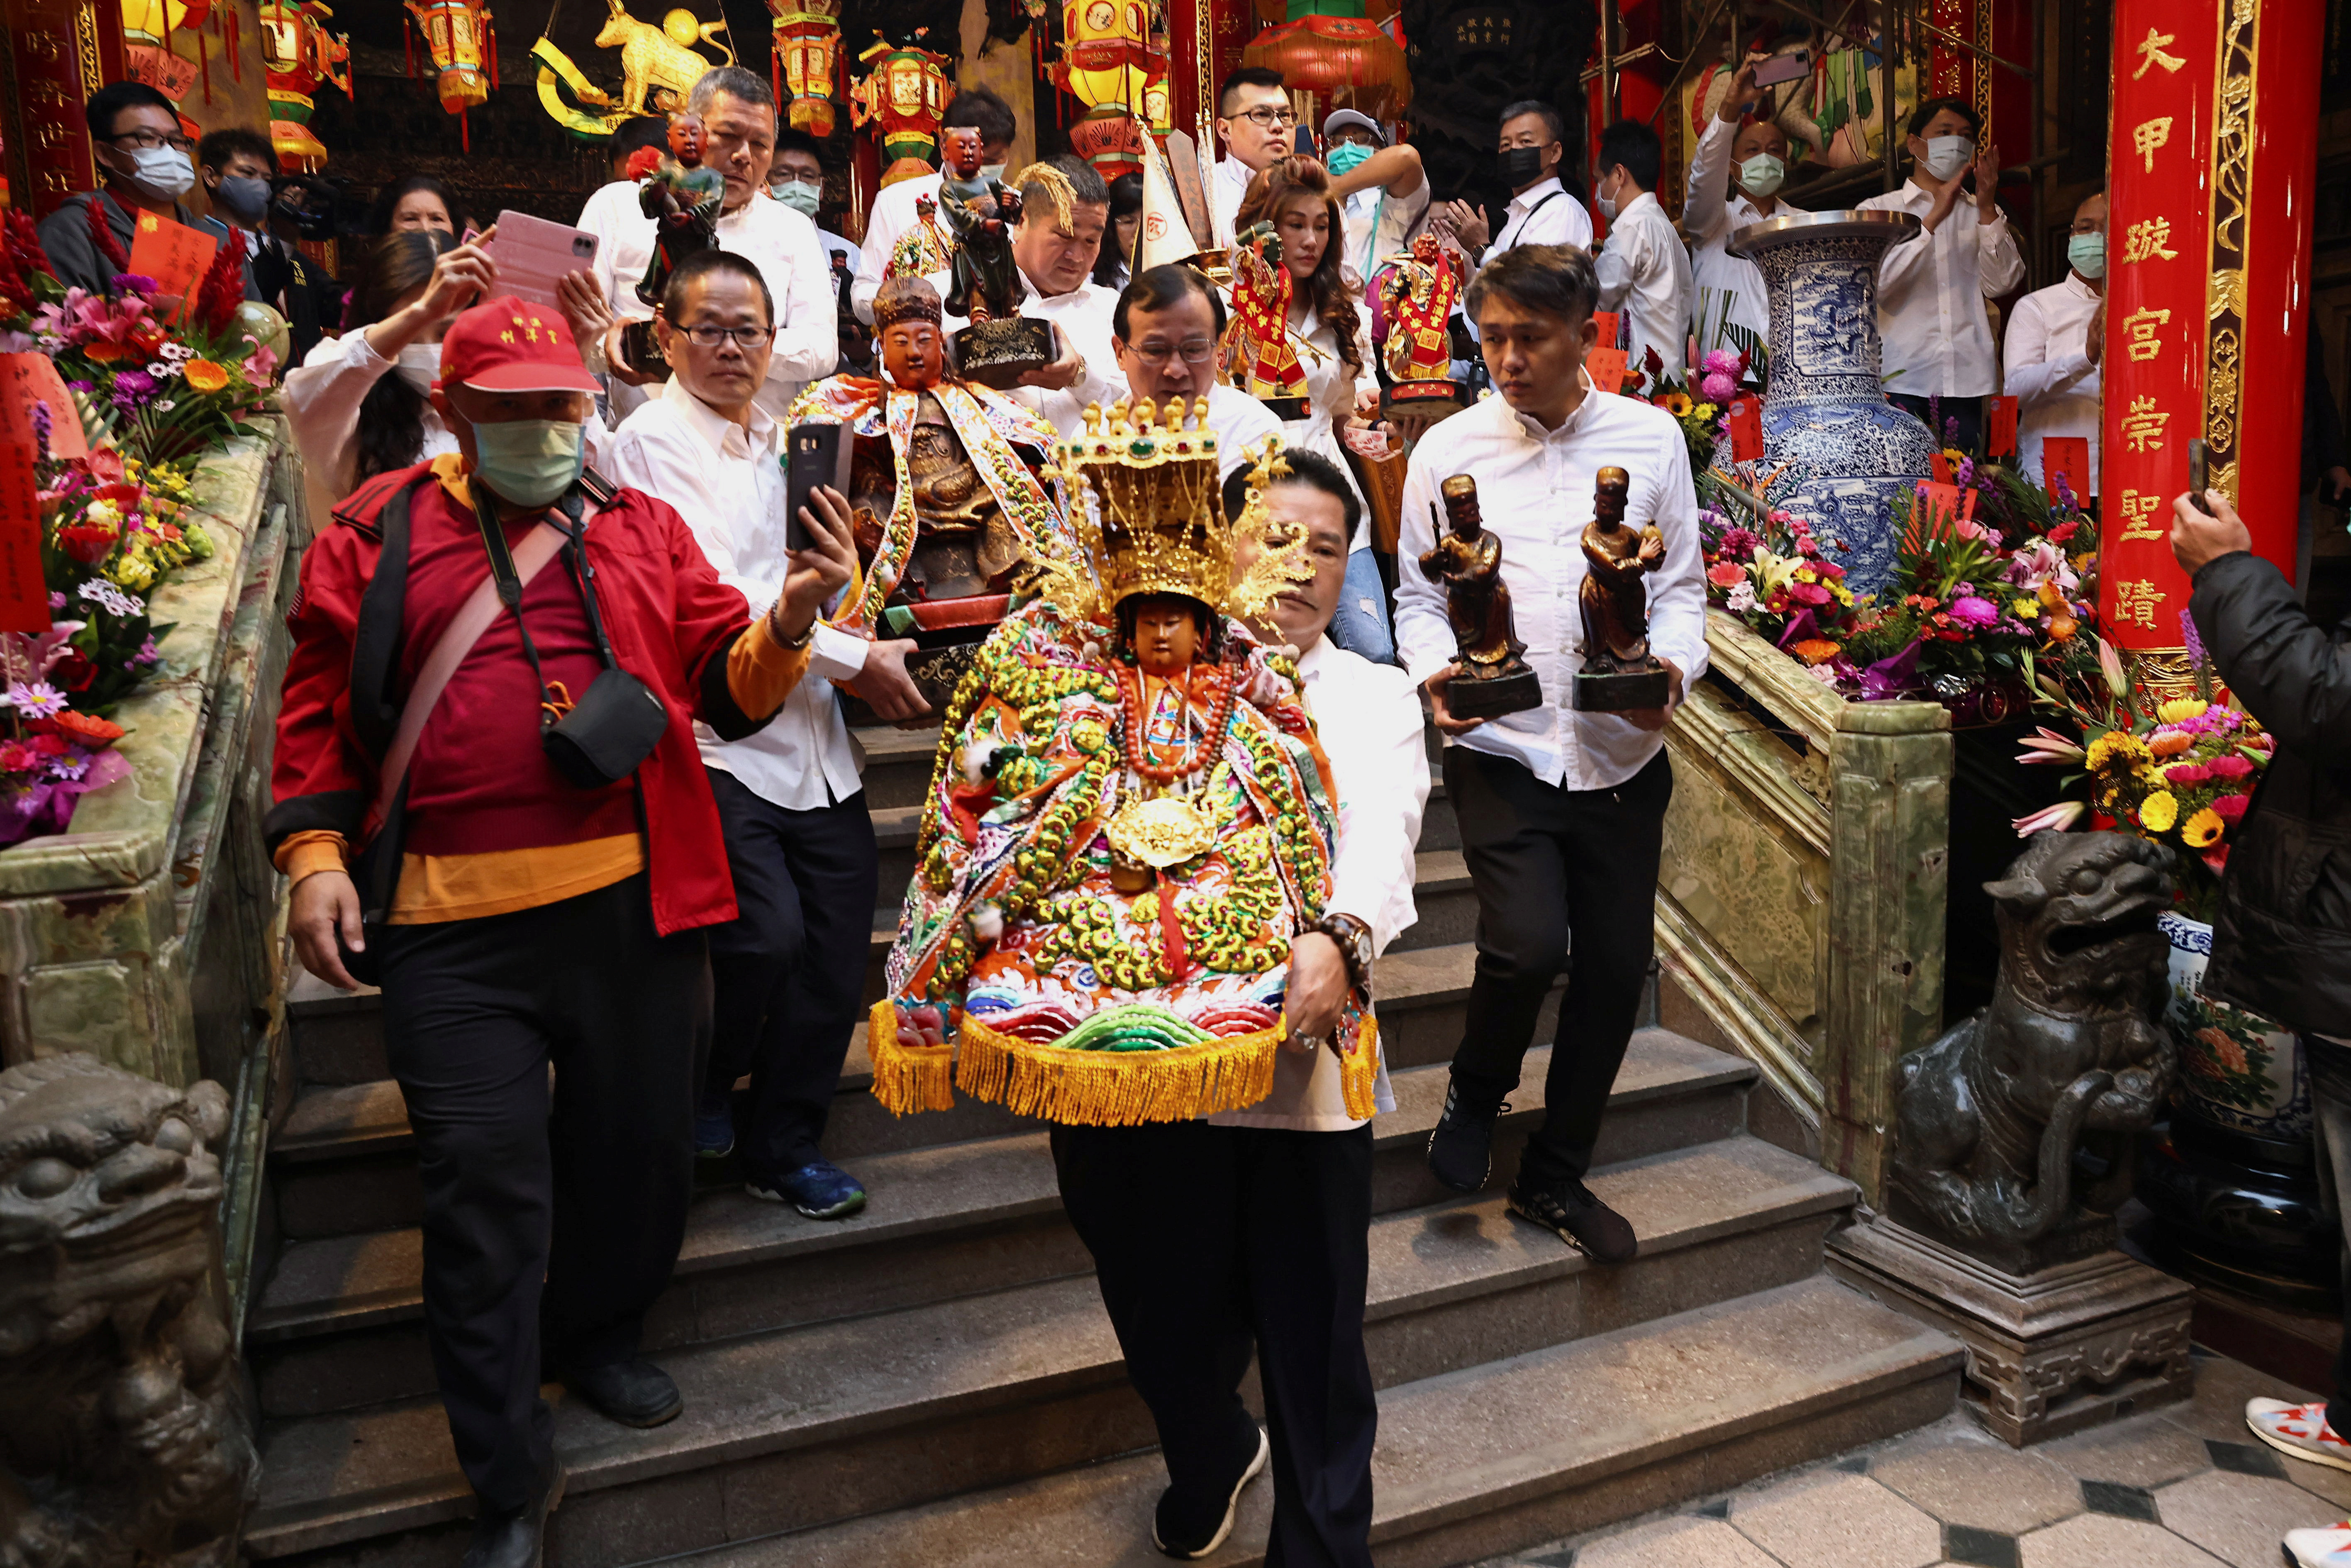 Yen Ching-piao, chairman of the Jenn Lann Temple, carries a statue of the sea goddess Mazu to begin the rain prayer ritual at the temple, in Taichung, Taiwan March 7, 2021. REUTERS/Ann Wang